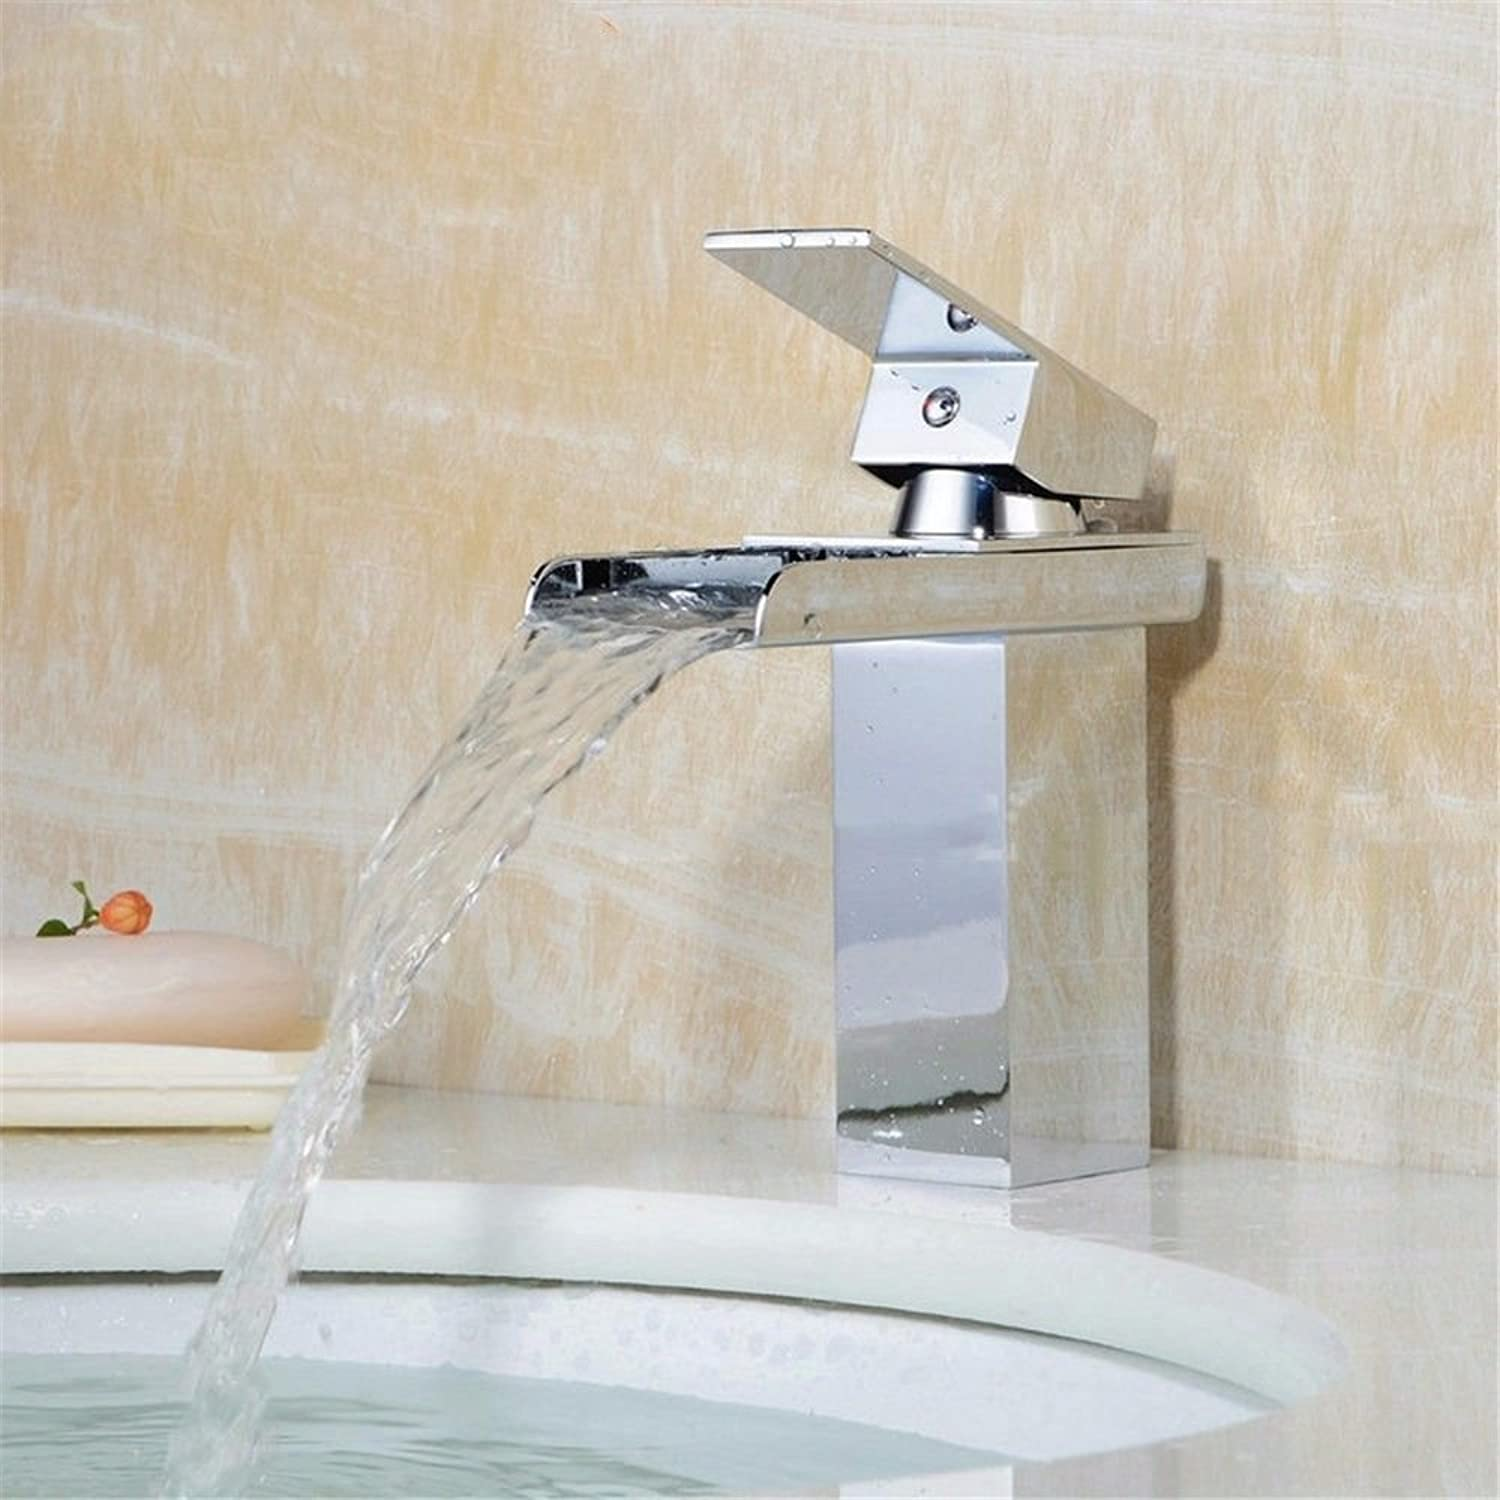 AQMMi Basin Sink Tap Bathroom Bar Faucet Waterfall Hot and Cold Water Brass Single Hole Retro Bathroom Basin Sink Faucet